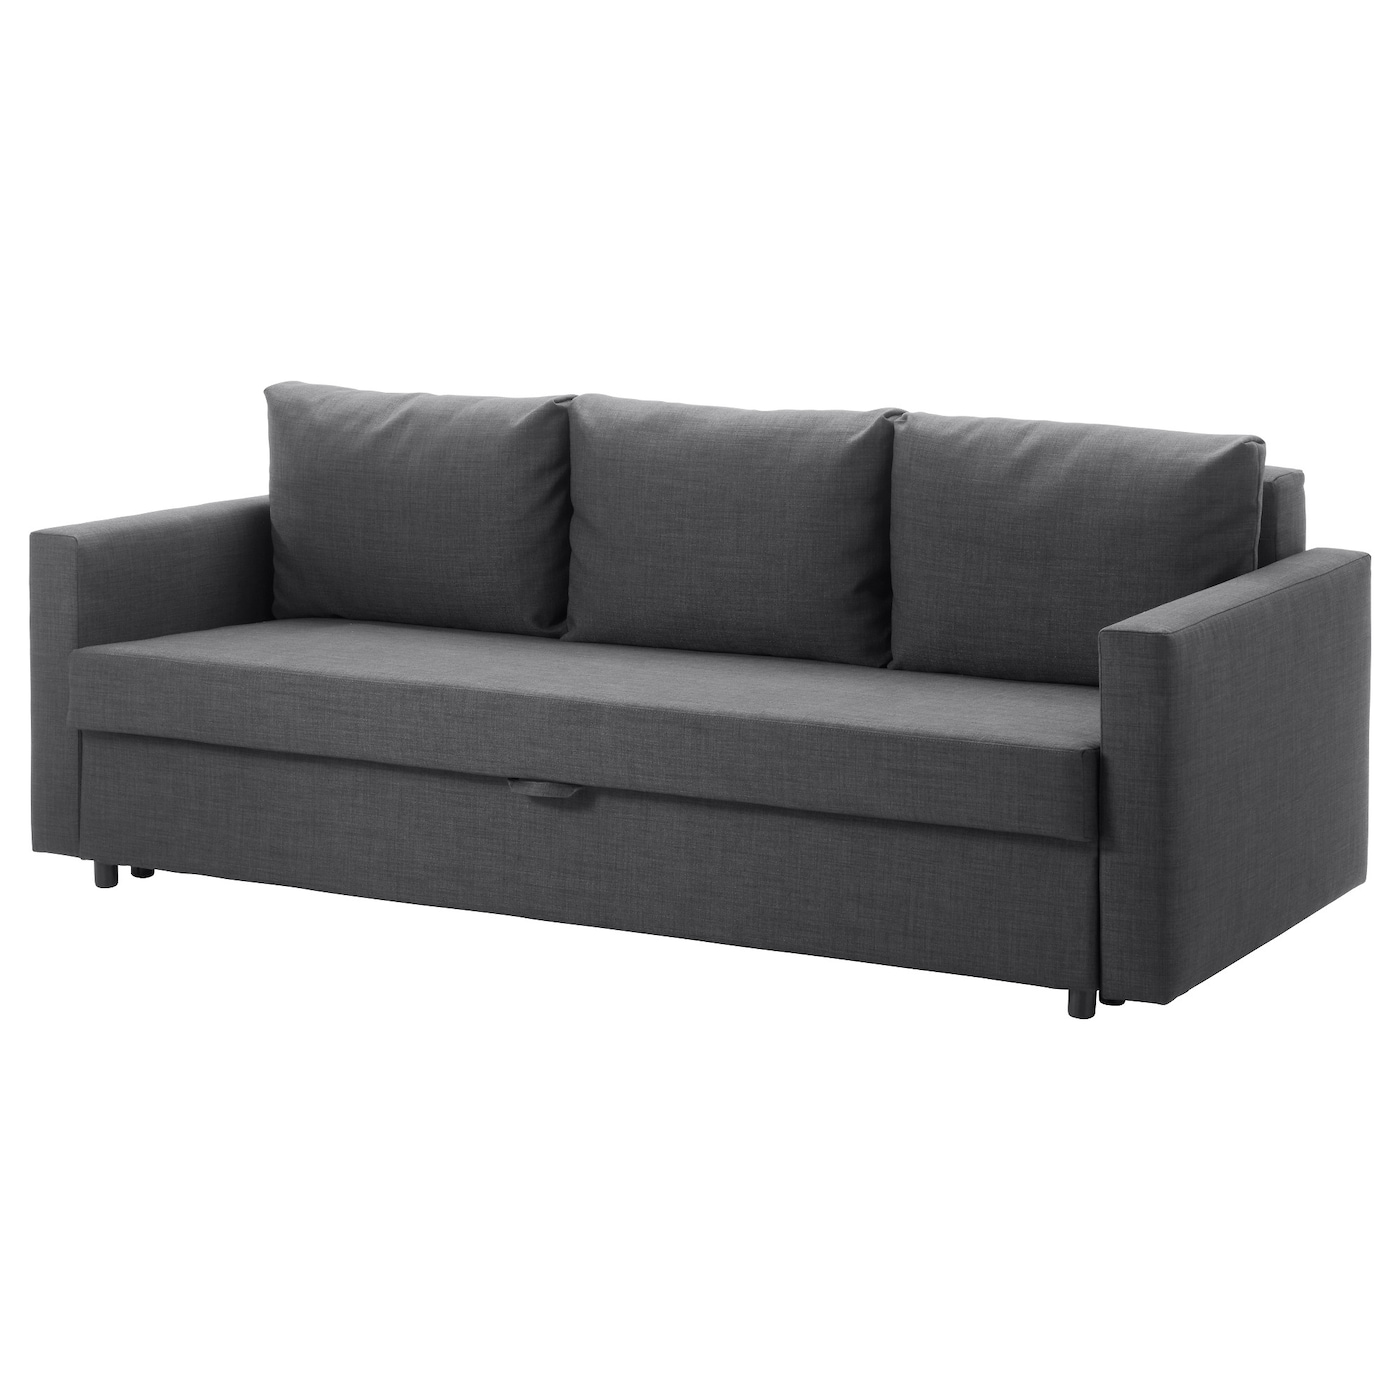 Friheten three seat sofa bed skiftebo dark grey ikea - Clic clac gris anthracite ...